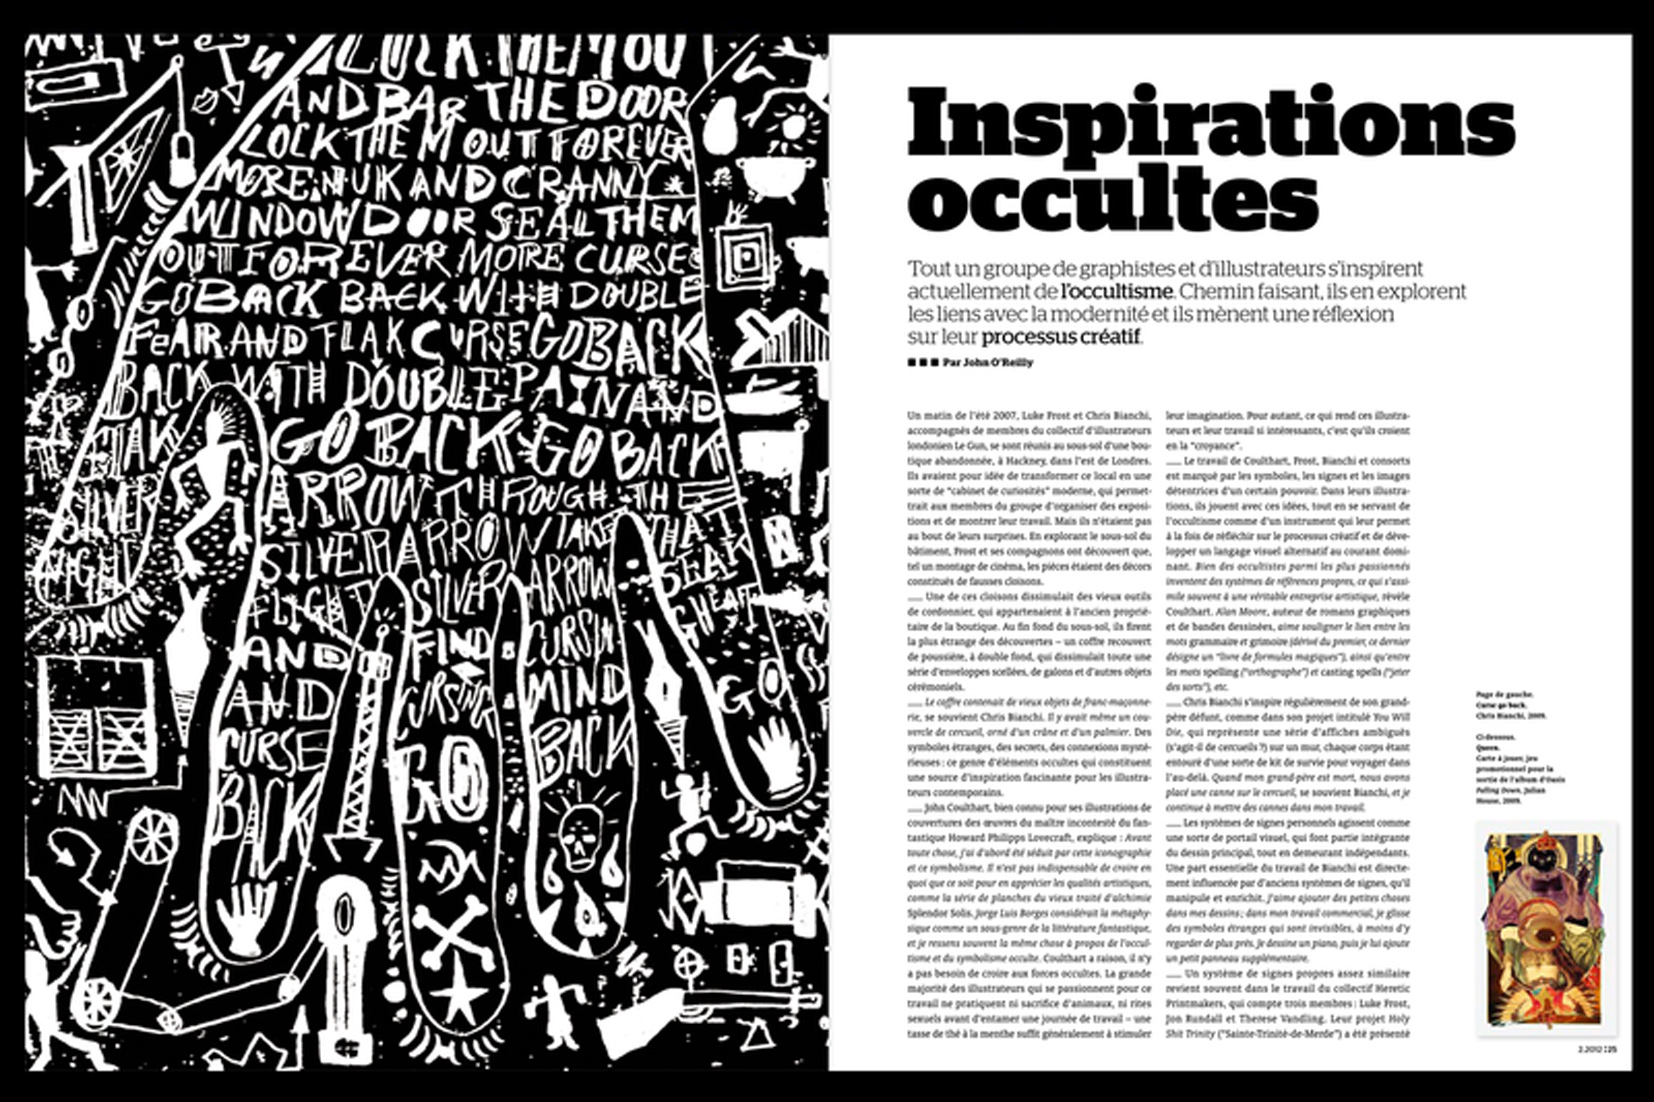 Inspirations Occultes